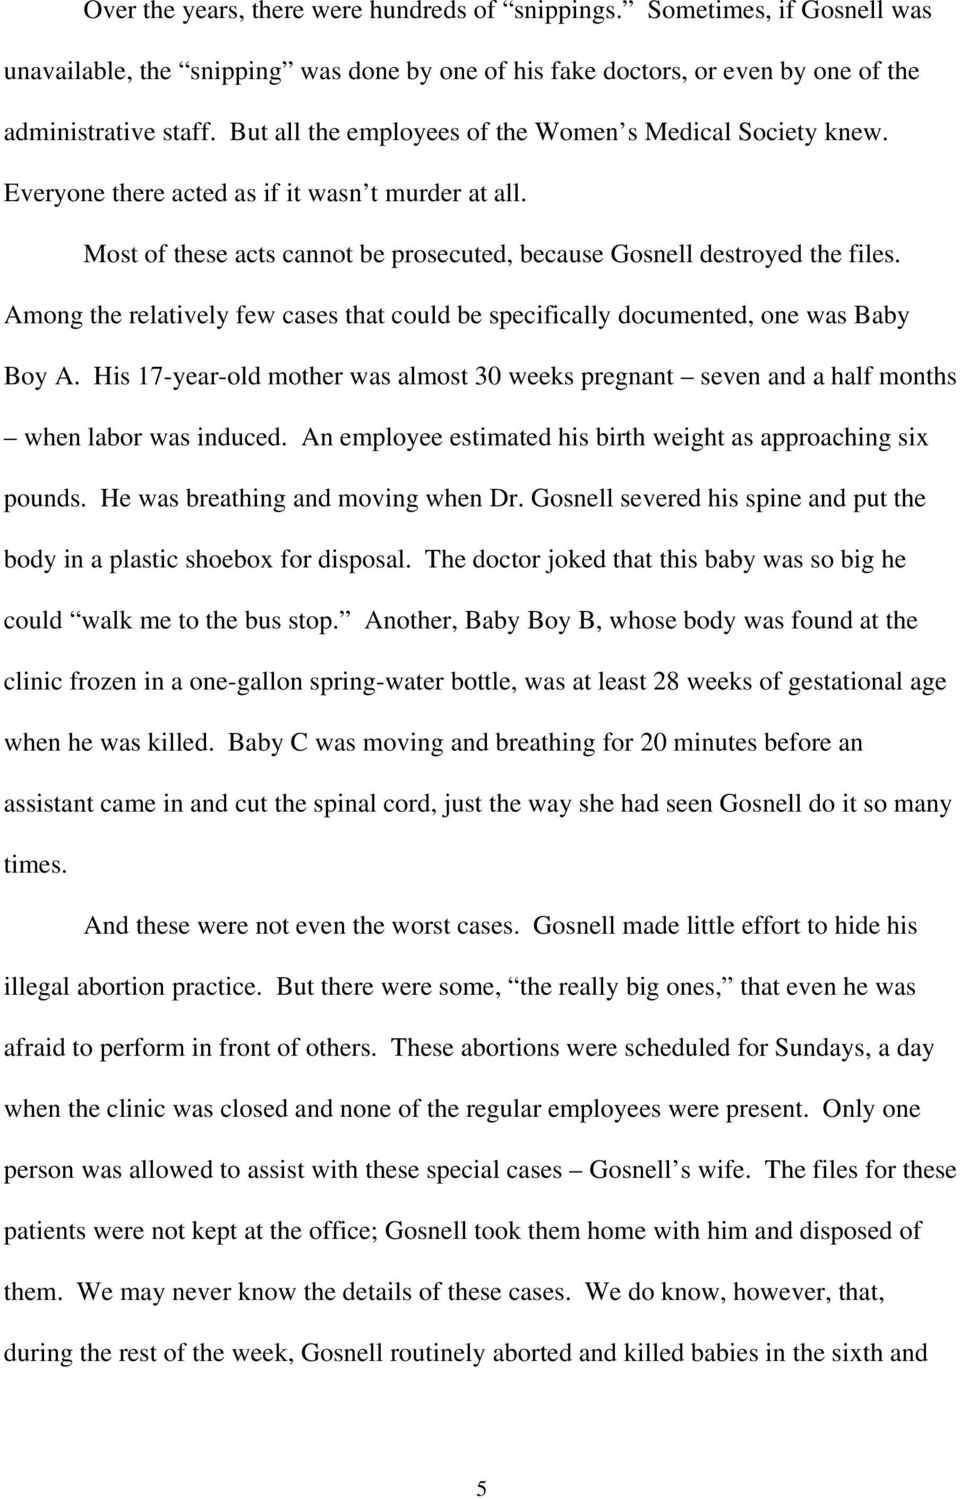 Among the relatively few cases that could be specifically documented, one was Baby Boy A. His 17-year-old mother was almost 30 weeks pregnant seven and a half months when labor was induced.